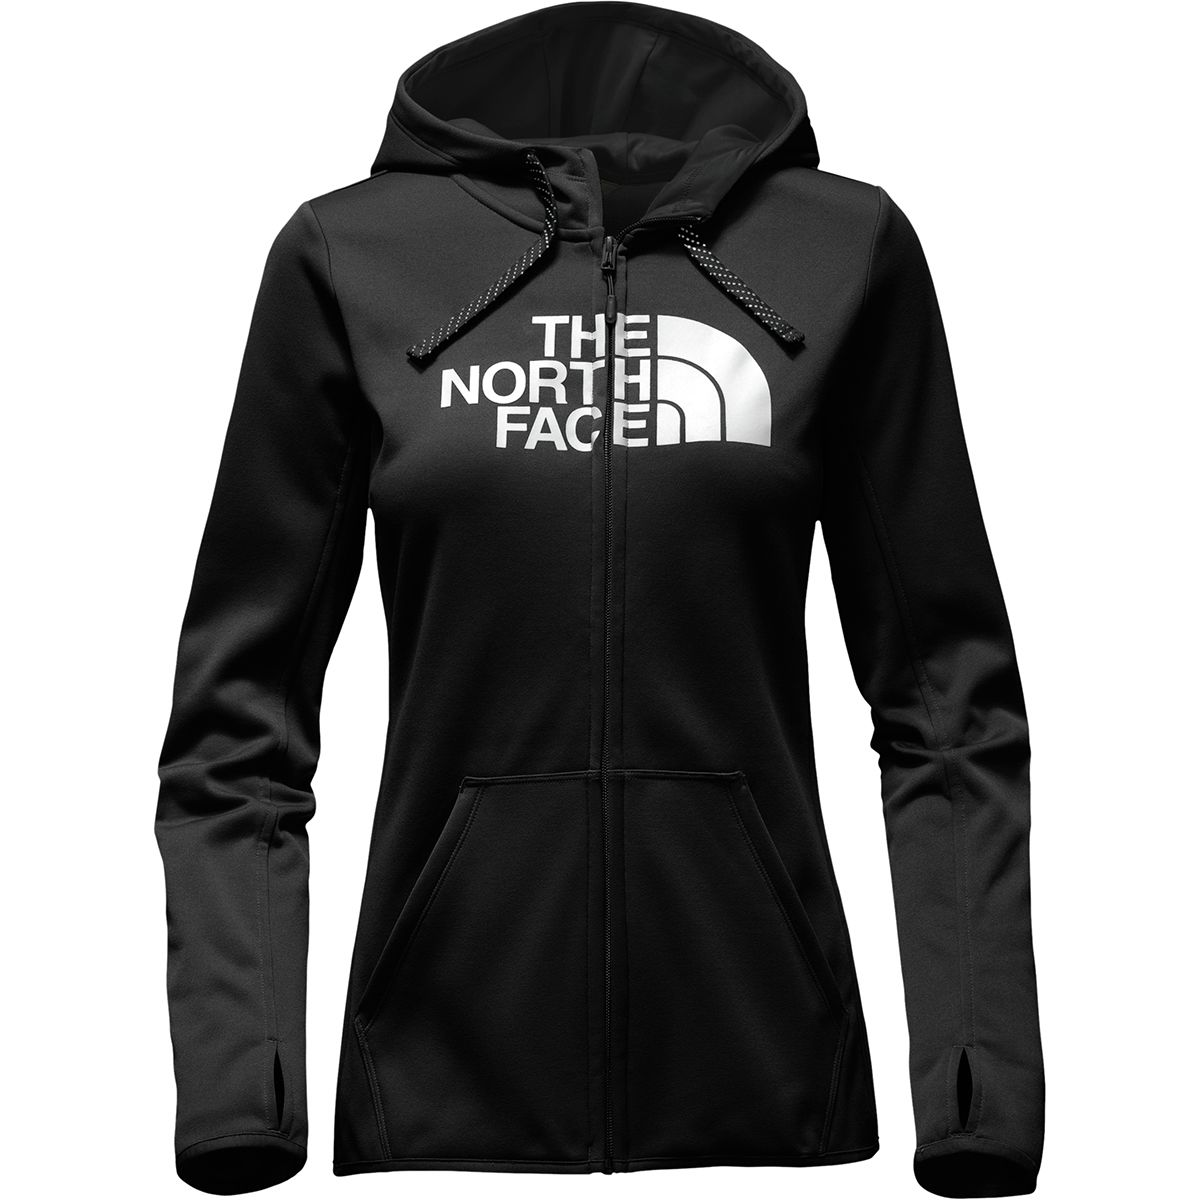 The North Face Fave Half Dome Full-Zip Hoodie - Women